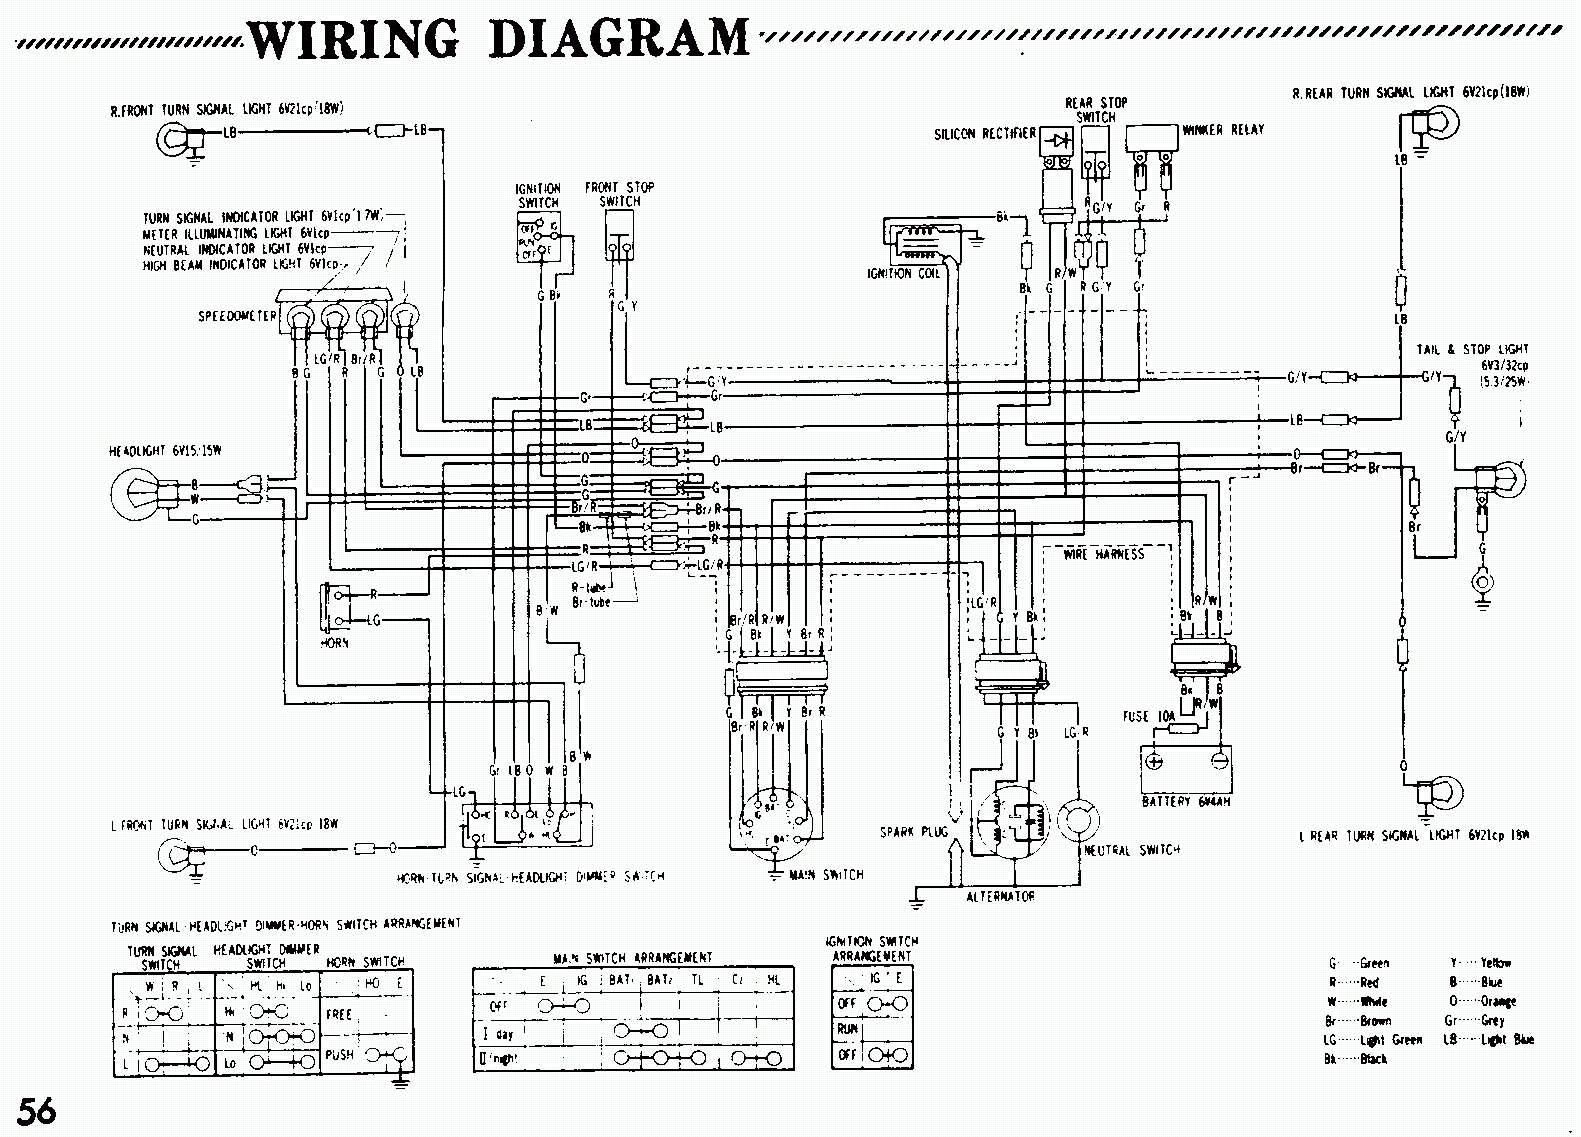 hight resolution of ct70 wiring diagram wiring diagrams 1970 honda trail 70 wiring diagram 1970 honda ct70 wiring diagram